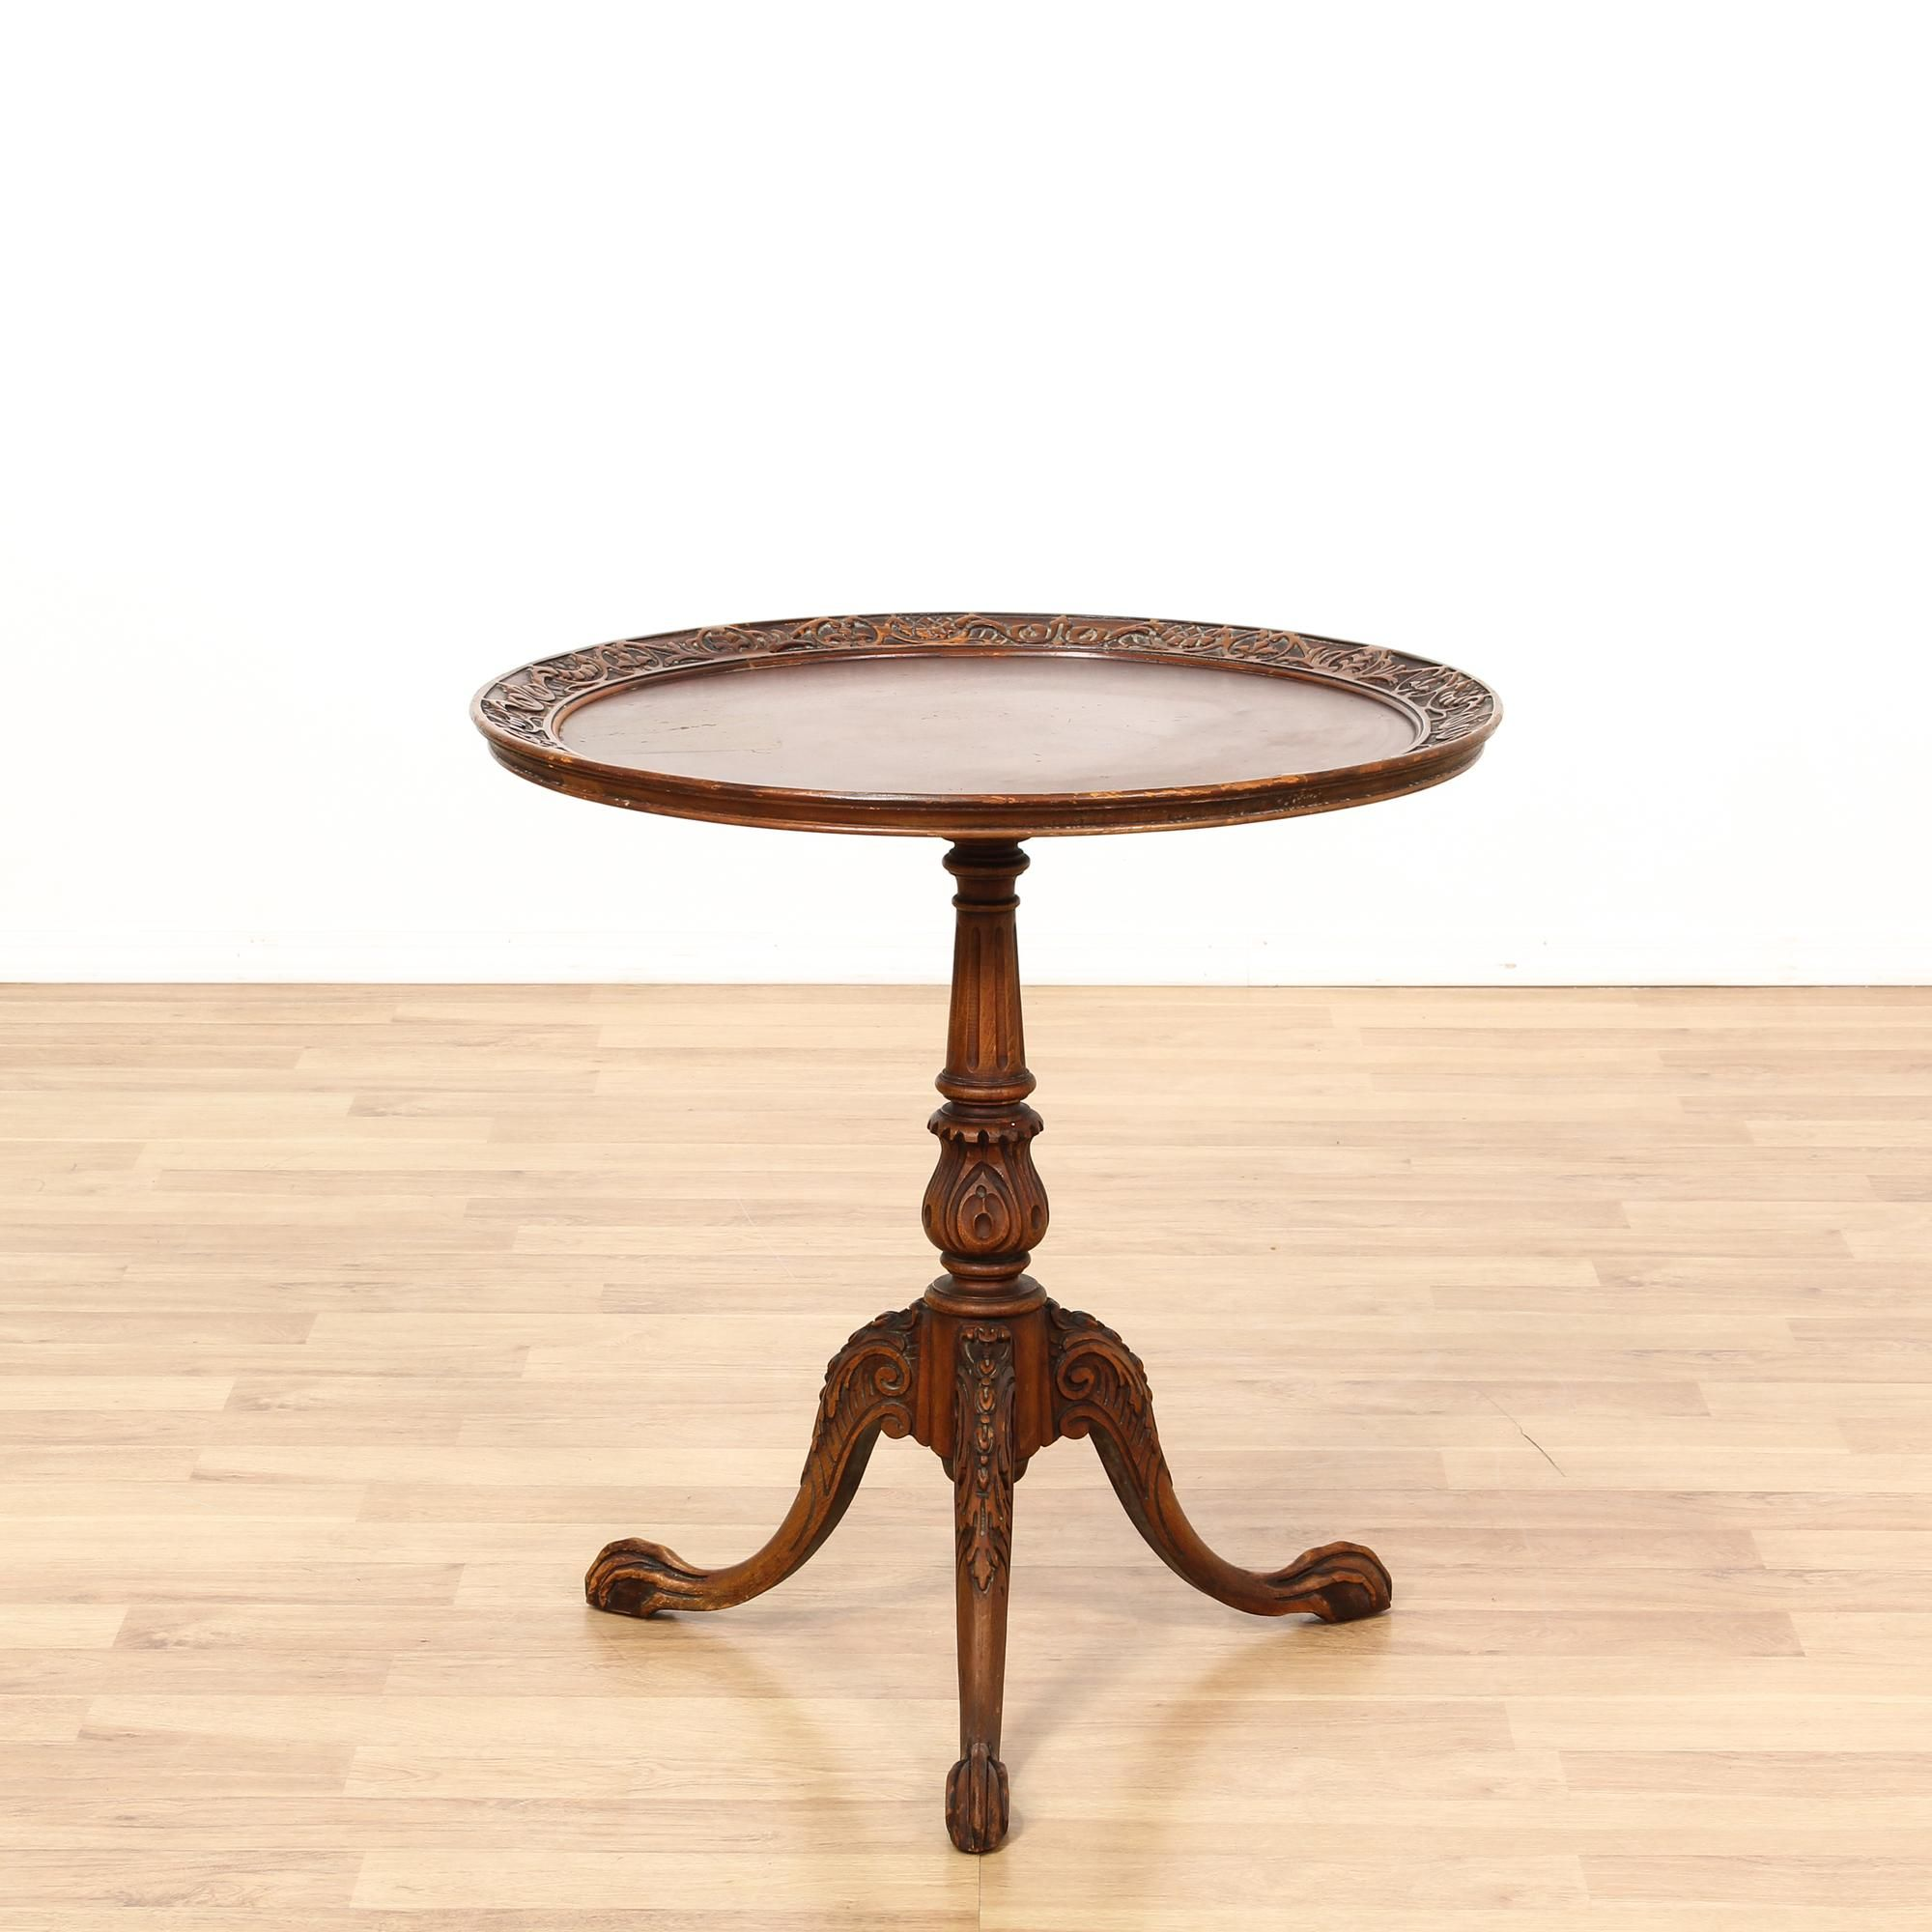 This Round Side Table Is Featured In A Solid Wood With A Glossy